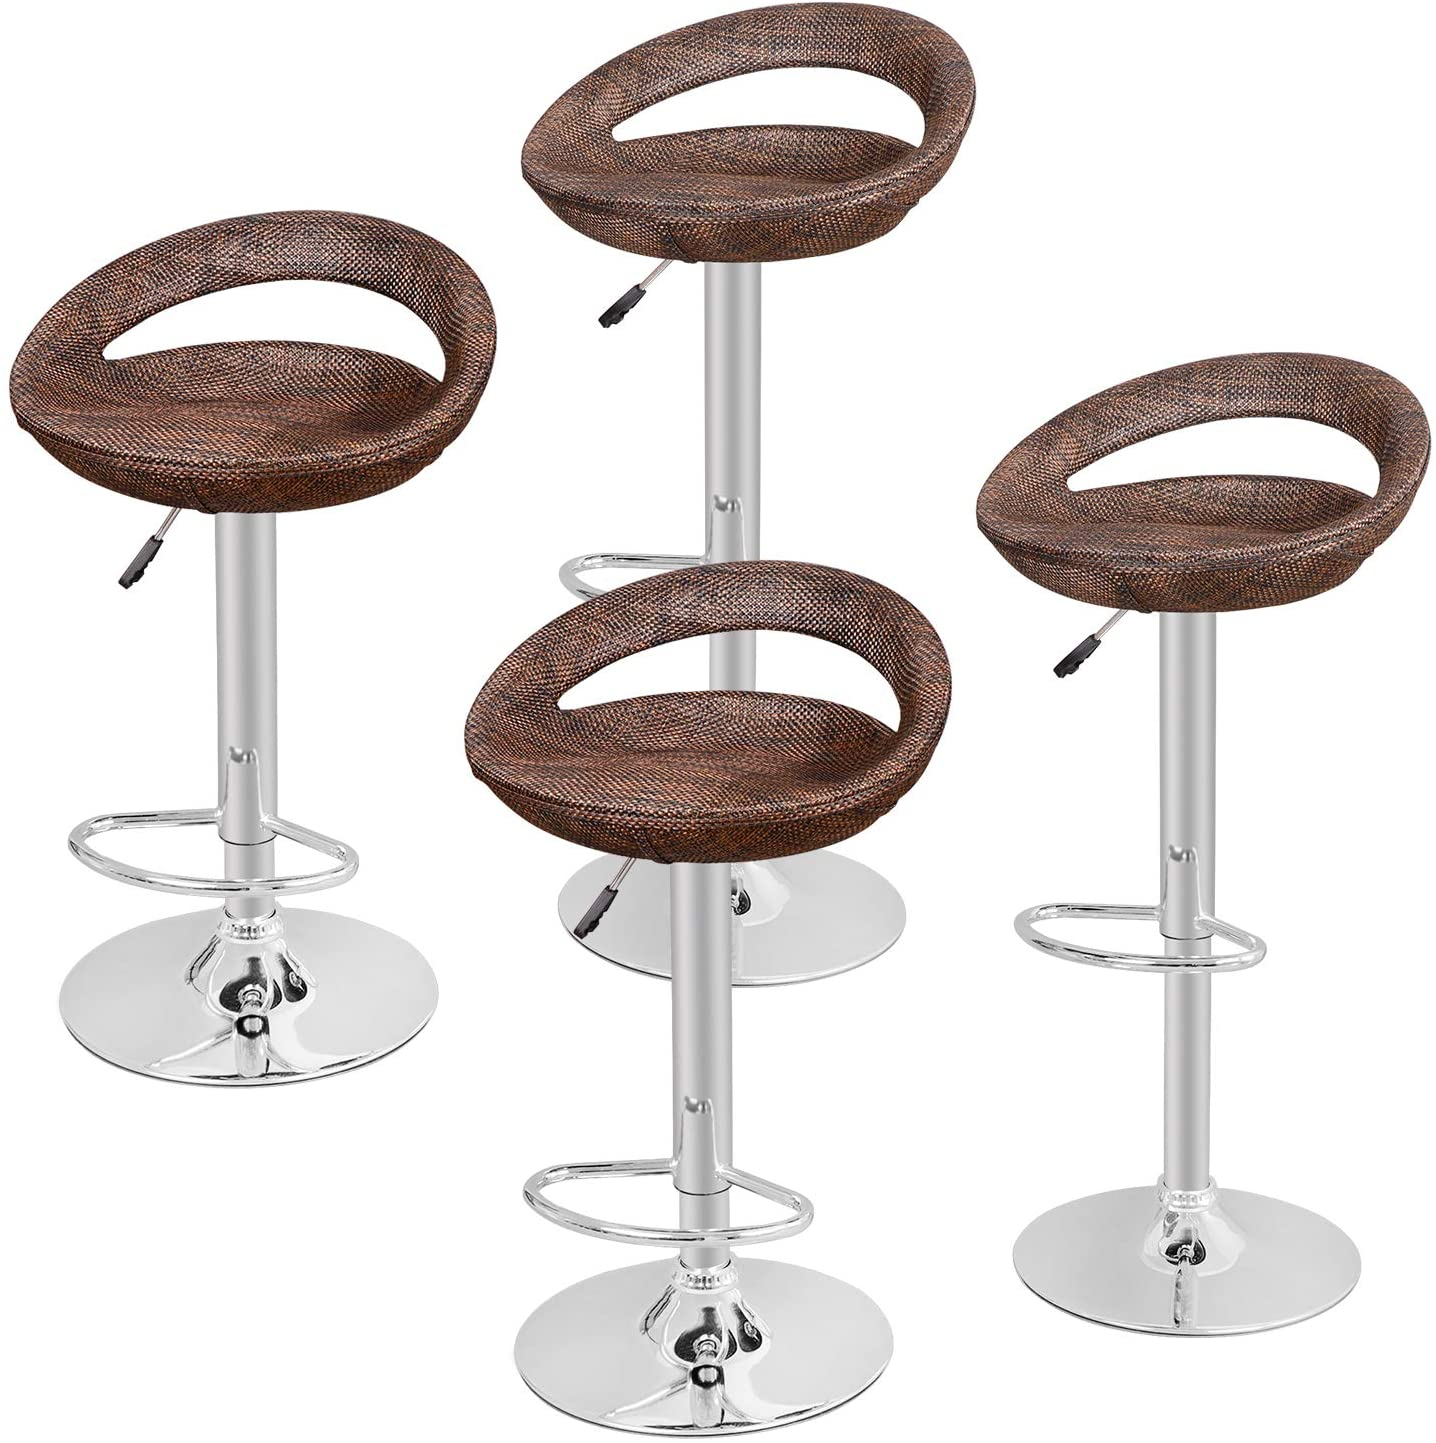 Zeny Set Of 4 Adjustable Bar Stools Pub Swivel Barstool Chairs With Back Pub Kitchen Counter Height Modern Patio Barstool Kitchen Dining